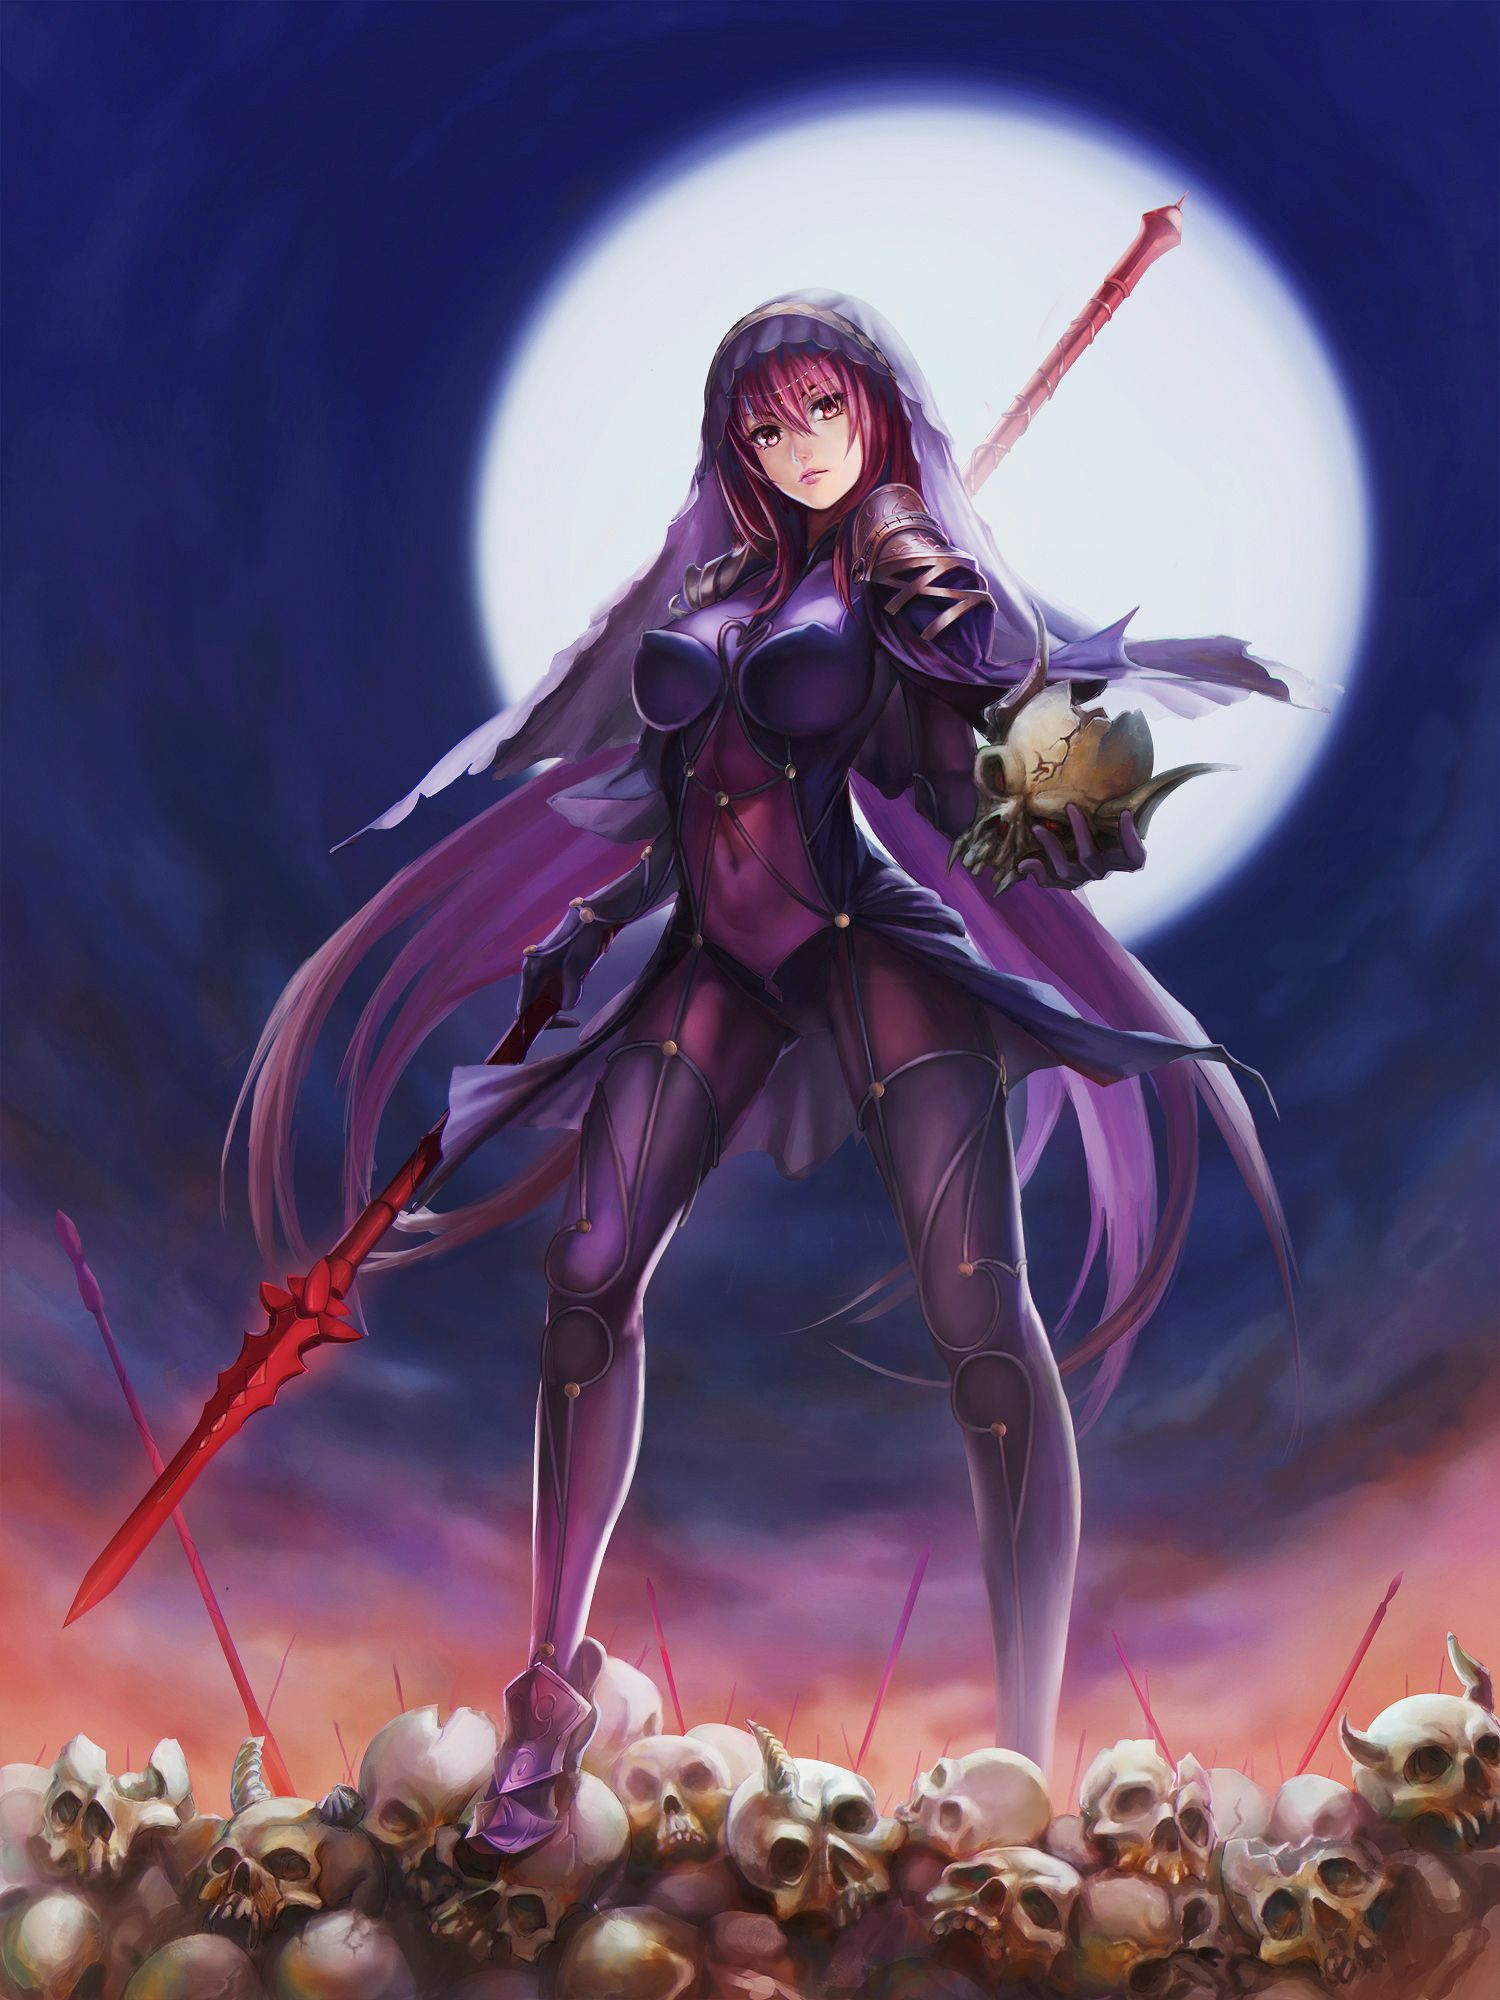 Fate/Grand Order Scathach Scathach fate, Fate grand